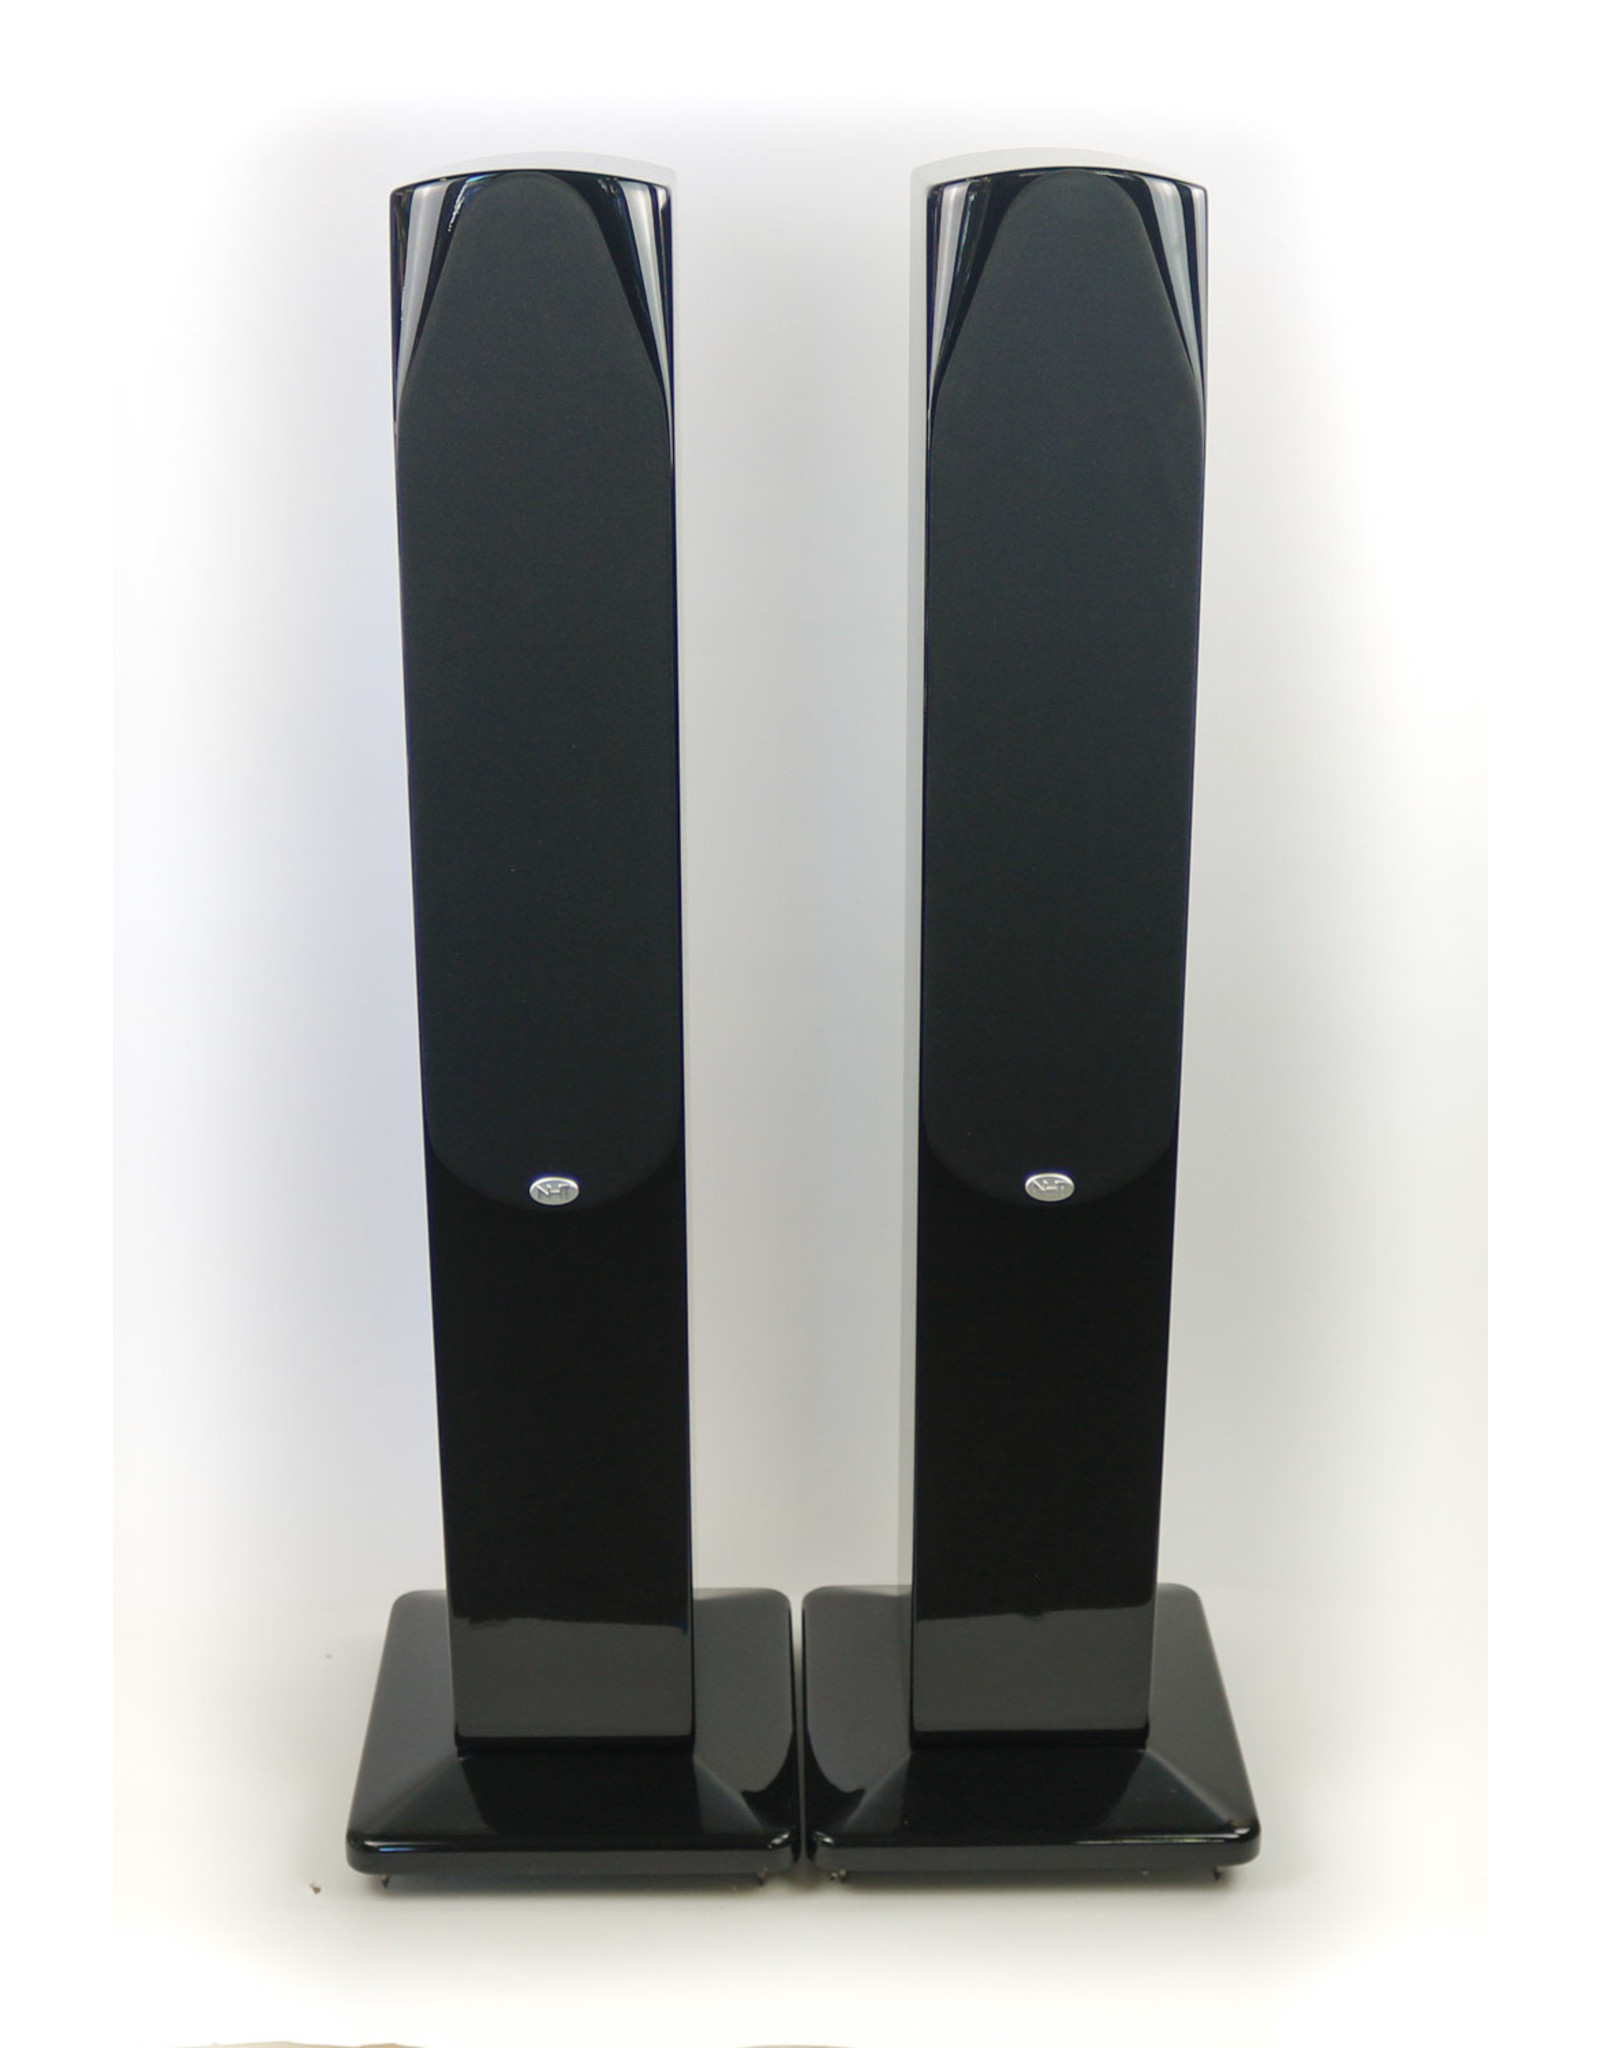 NHT NHT Absolute Tower Floorstanding Speakers USED